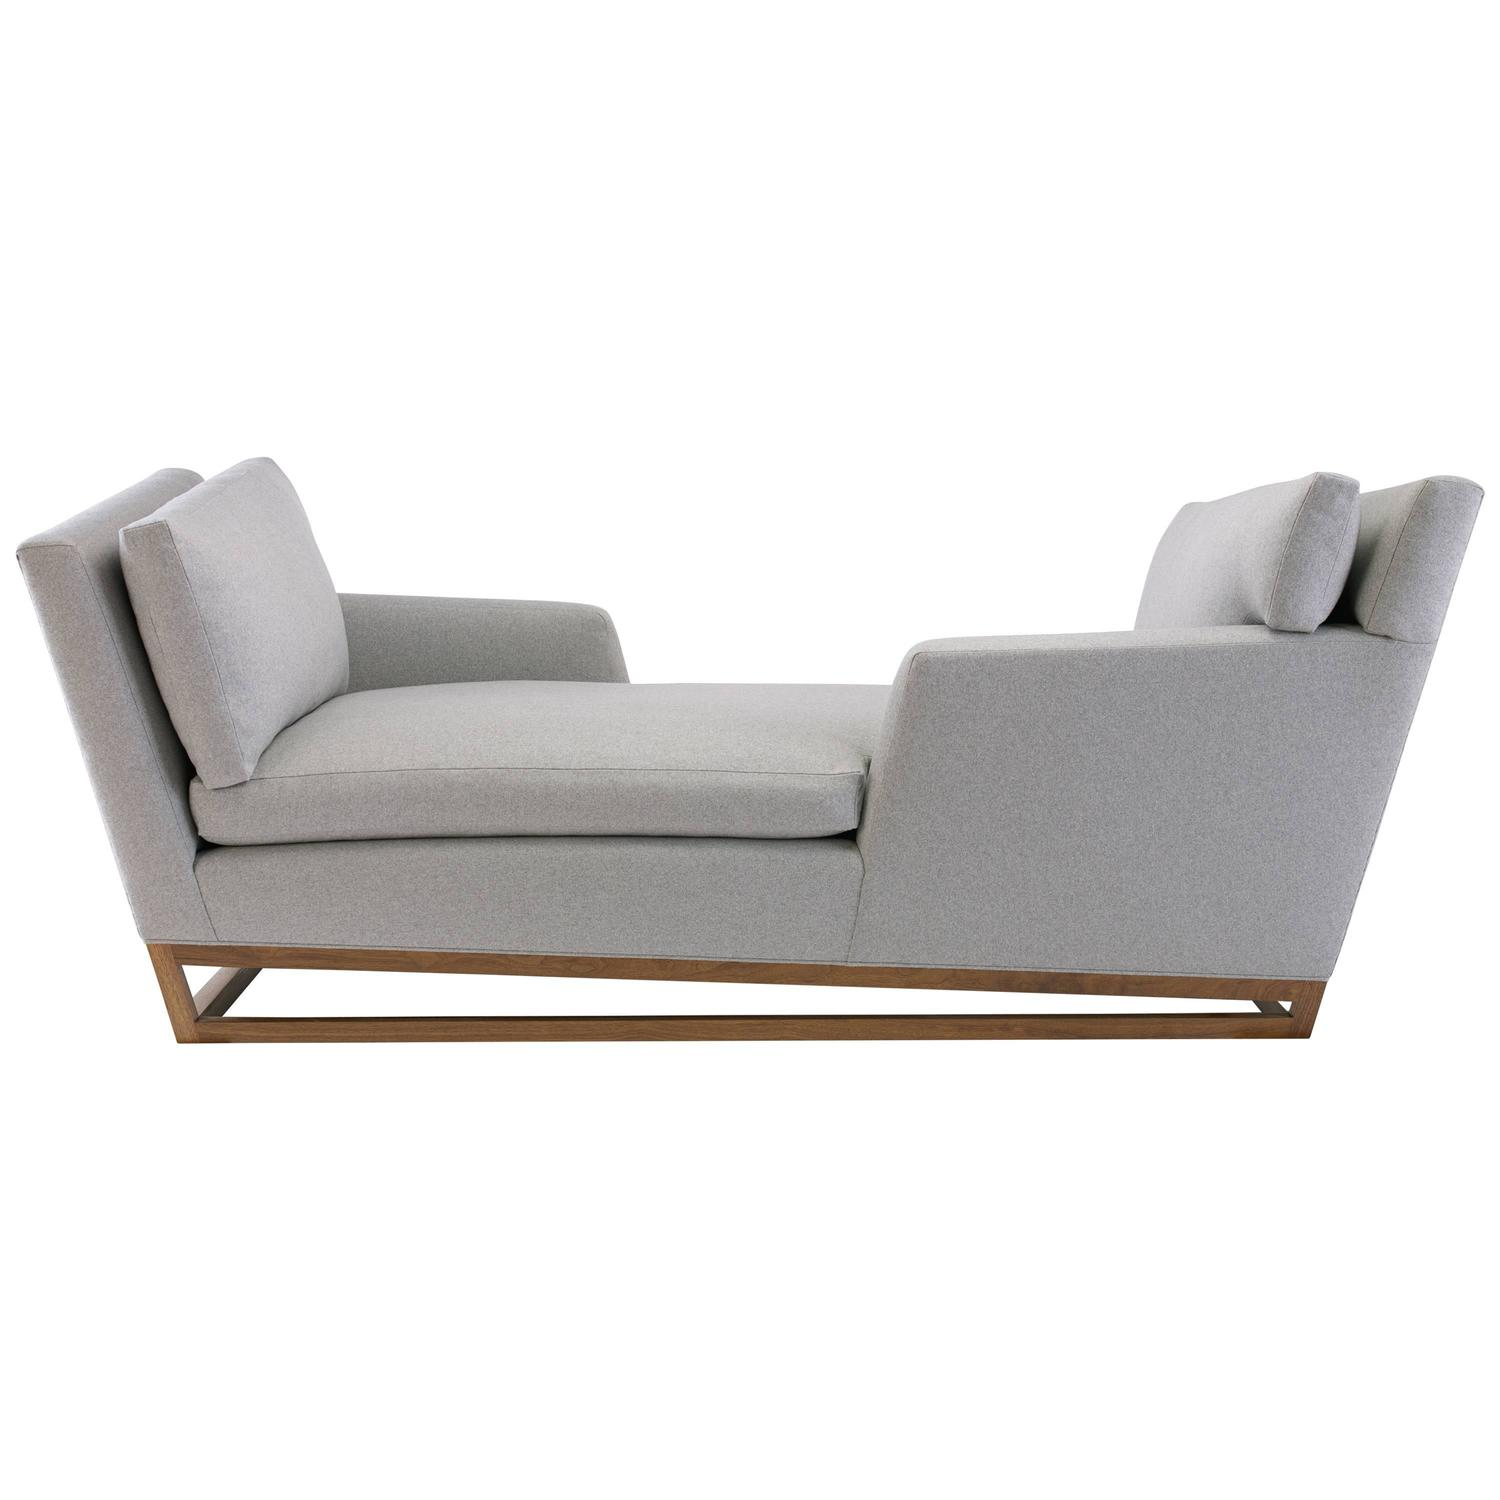 Italian Modern Sofa Bed SB46 with Arms Fabric New Made in Italy